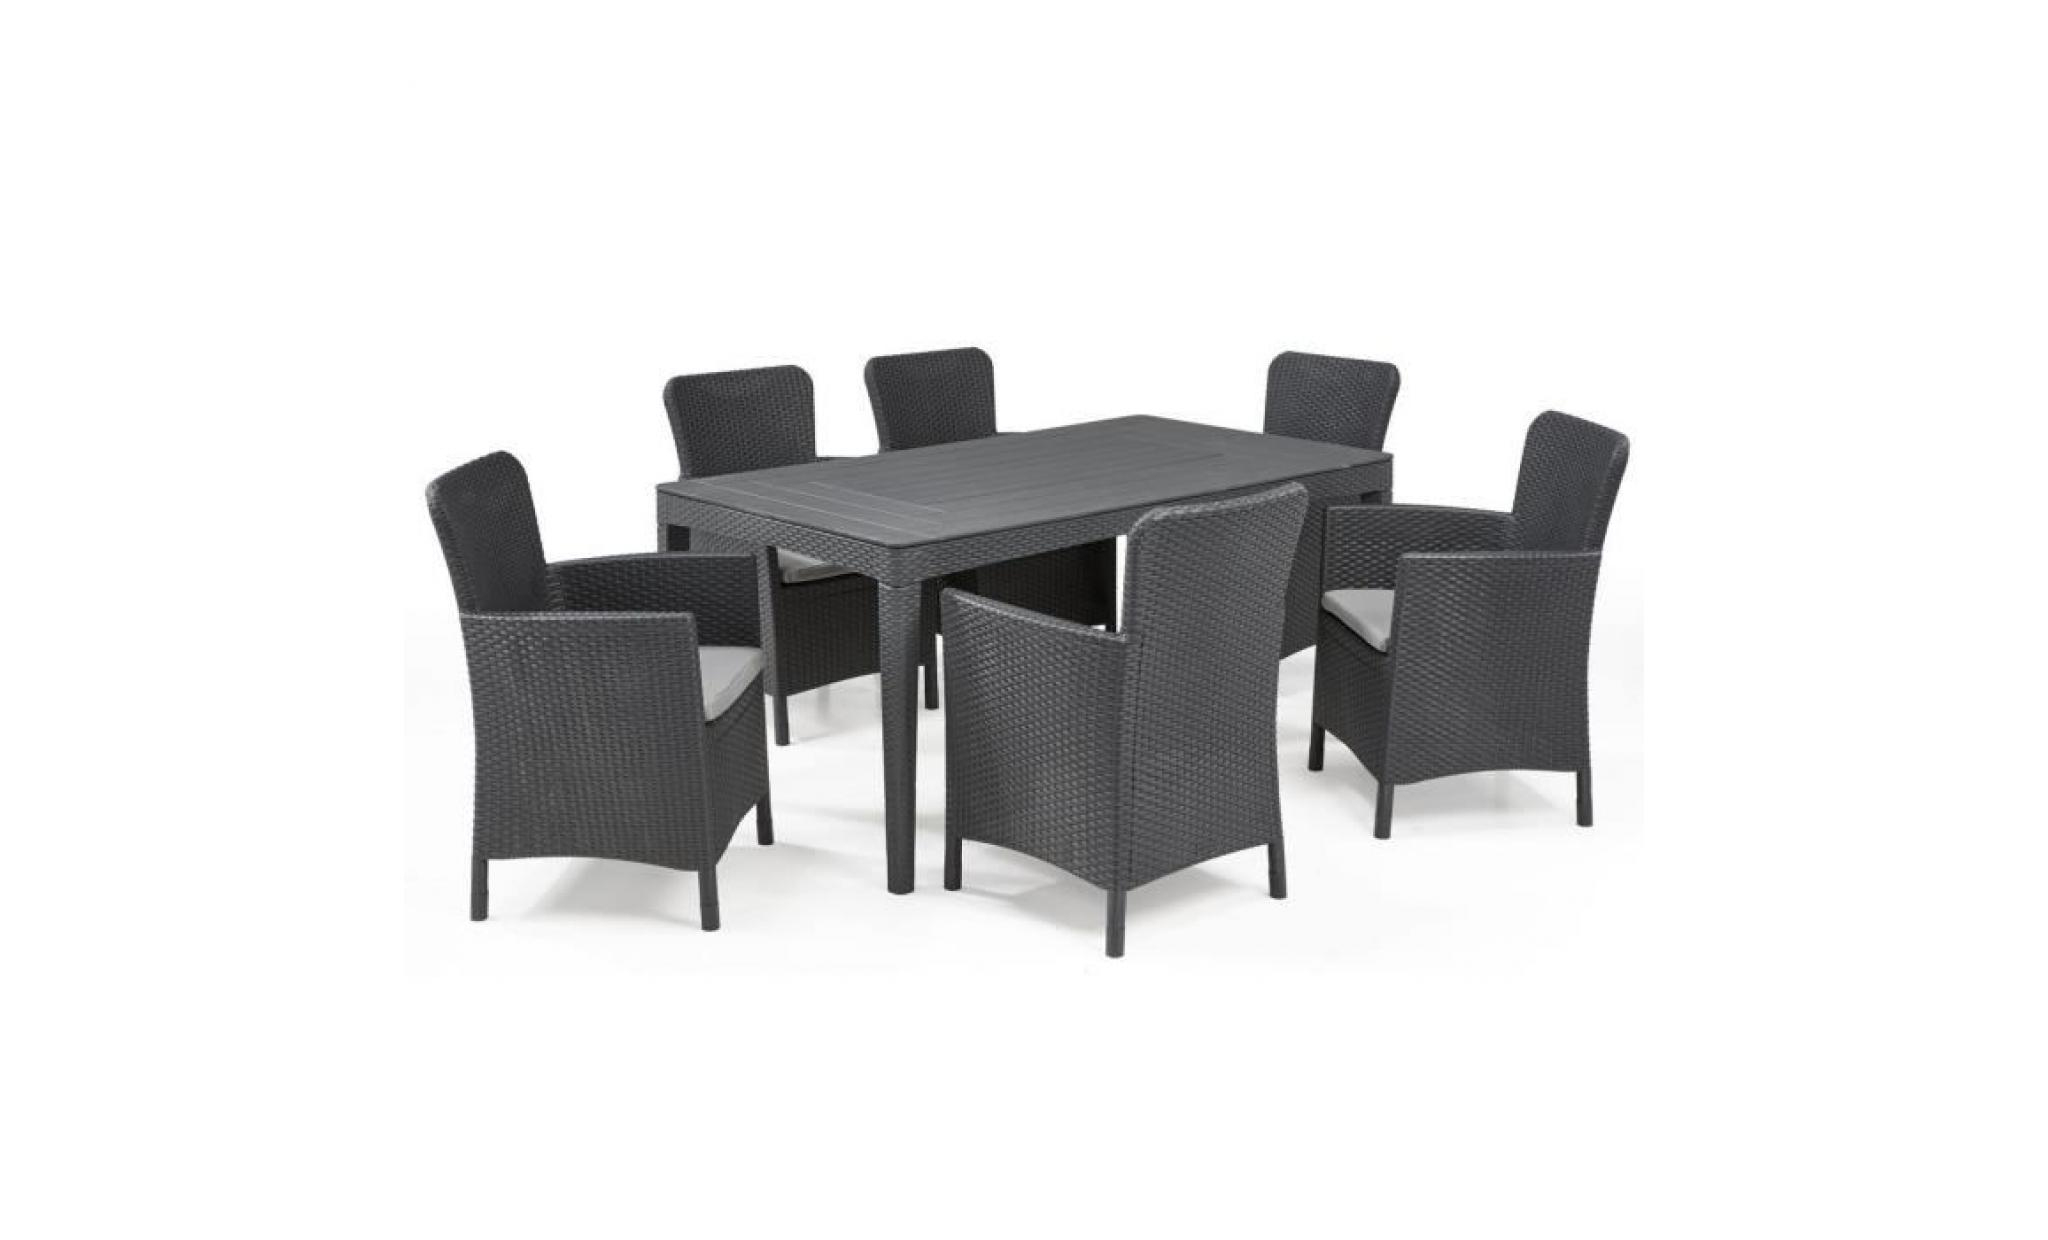 Allibert Jardin Table 6 Personnes Girona Wucker Rond Graphite avec Allibert Mobilier De Jardin